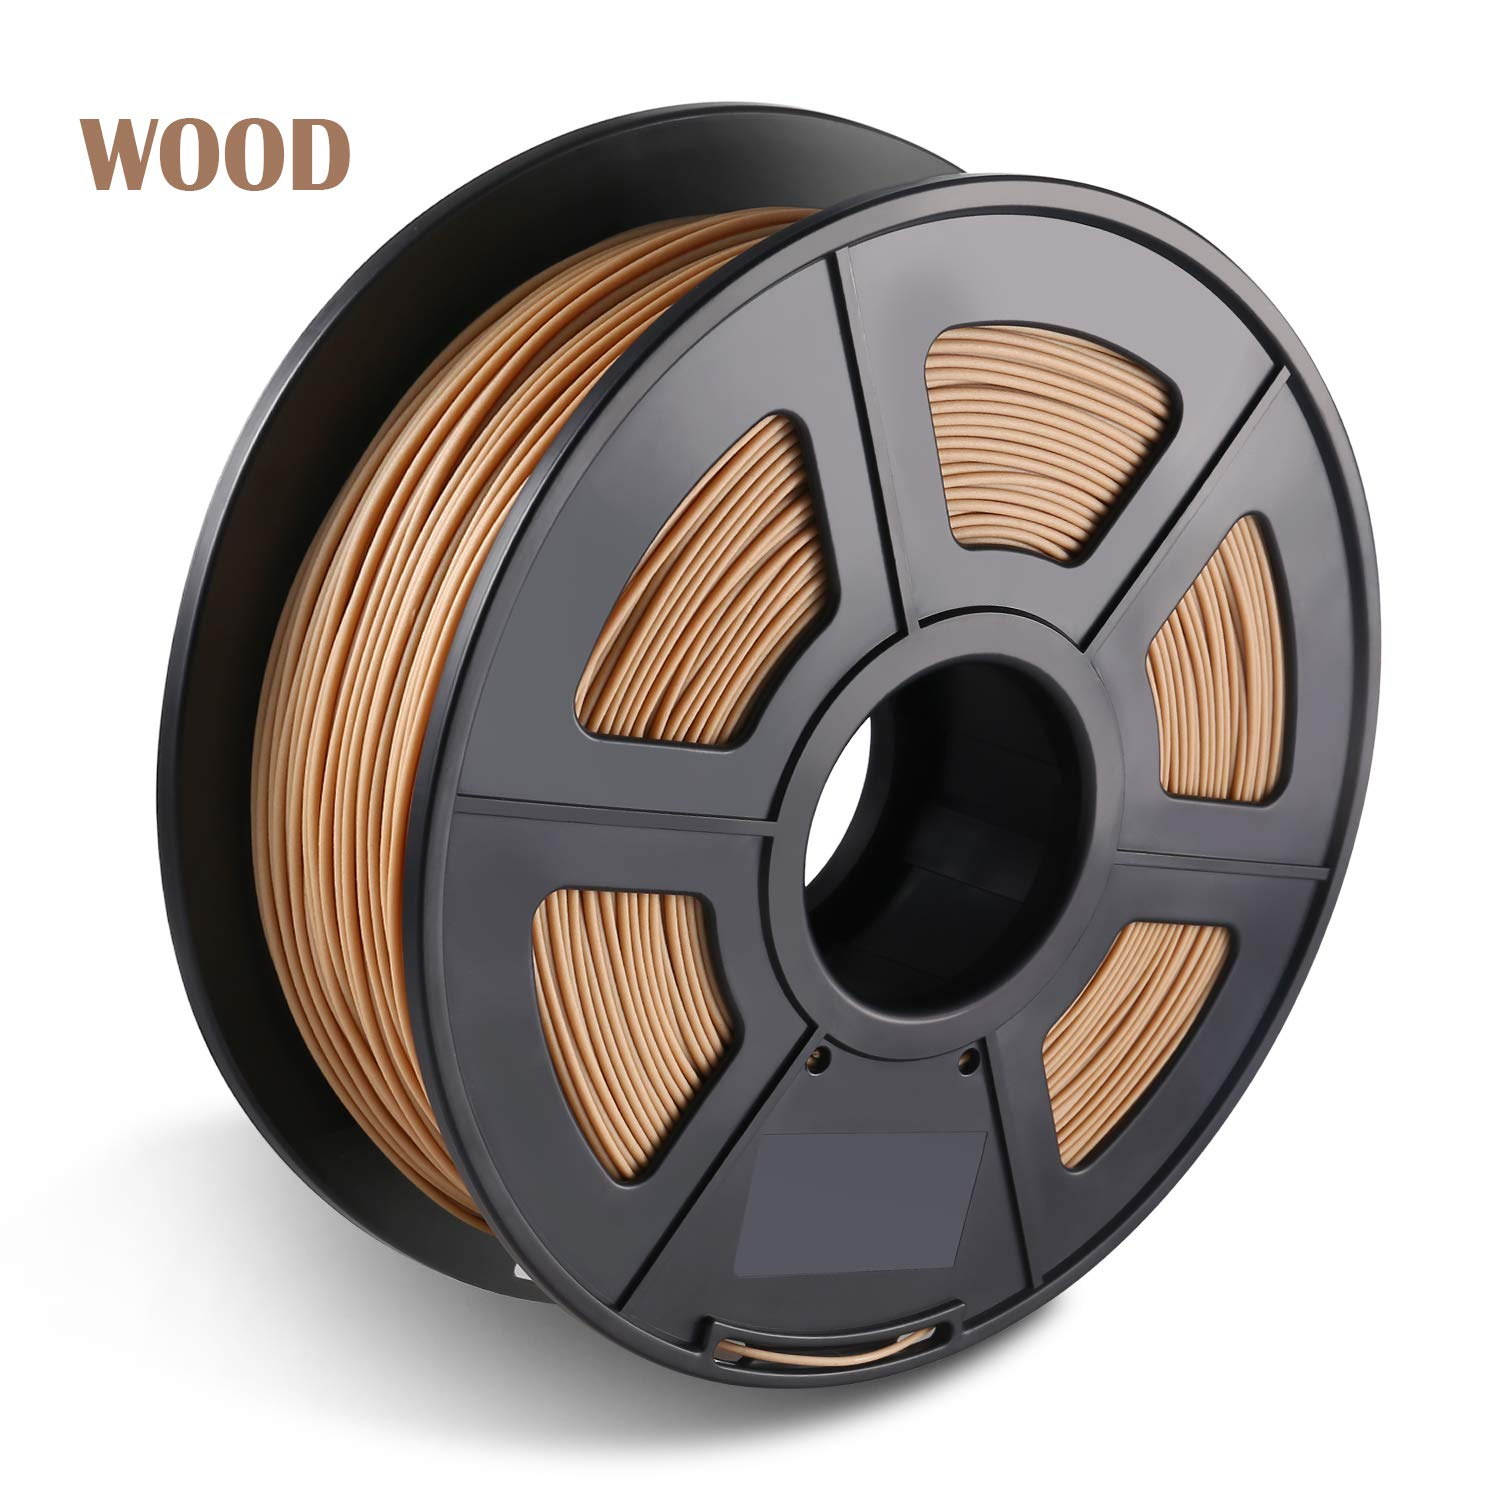 3d Drucker Filament WOOD 1.75mm, Makeasy Wood Filament 1.75mm, 3D Drucken Filament WOOD fü r 3D Drucker und 3D Stift, 1kg 1 Spool